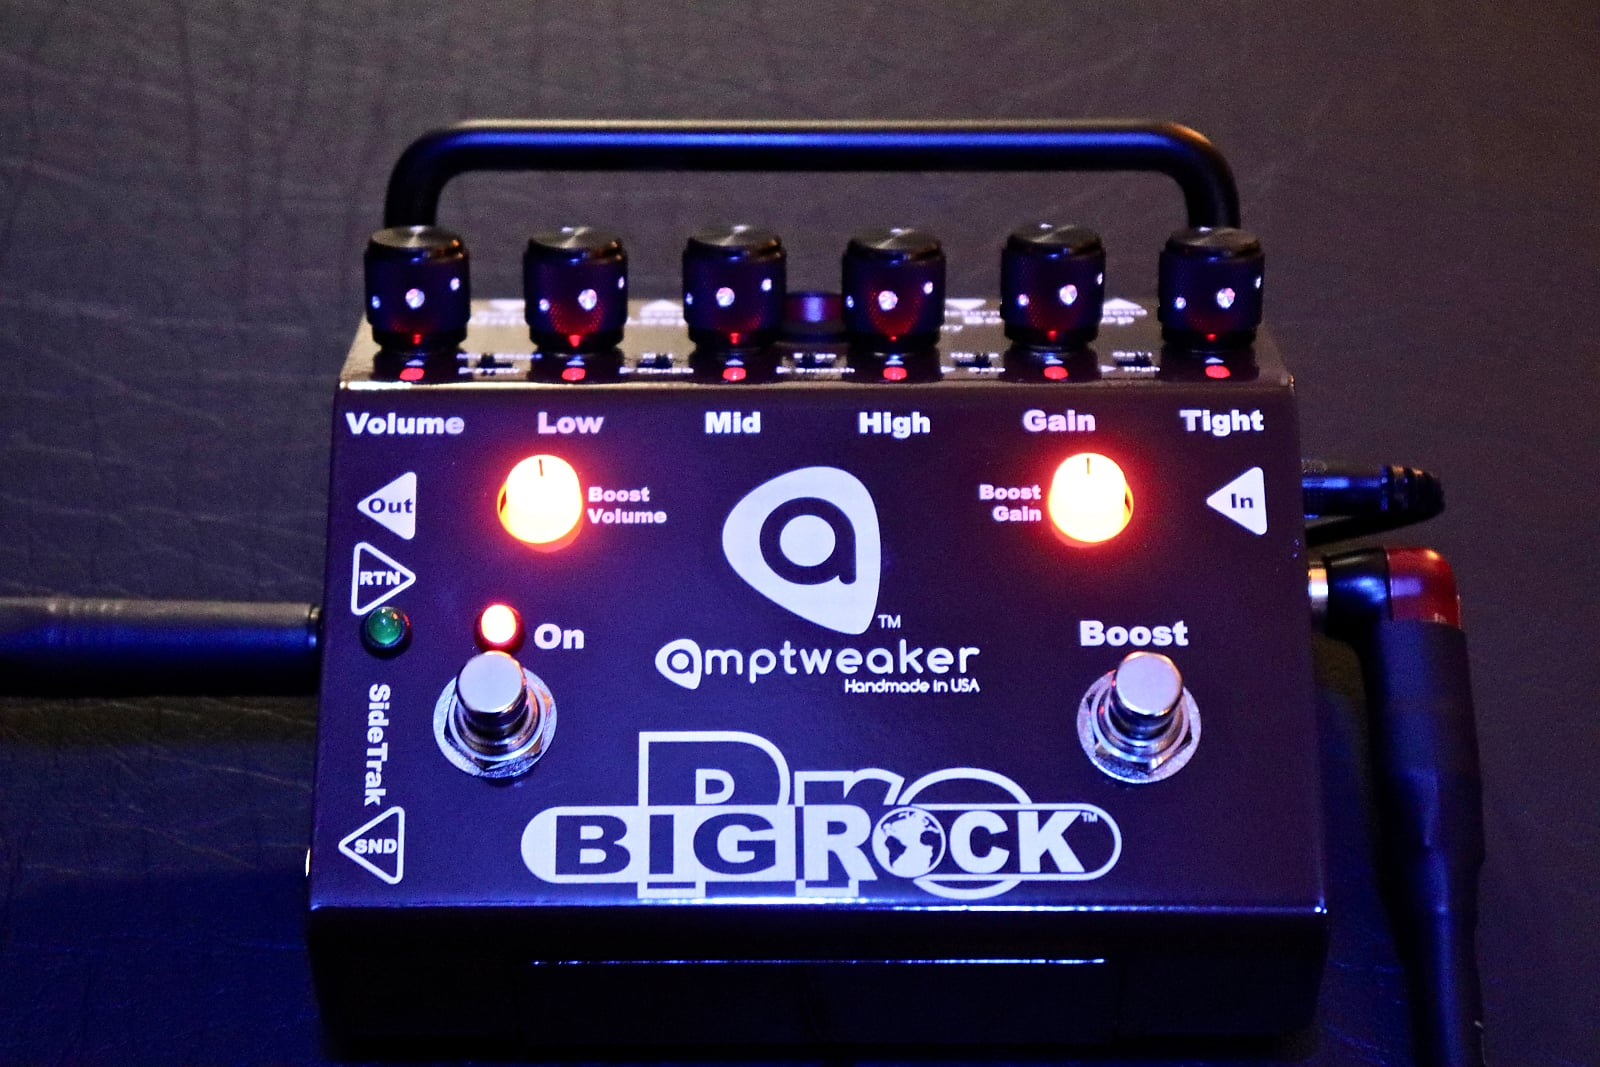 Amptweaker Big Rock Pro Distortion Pedal